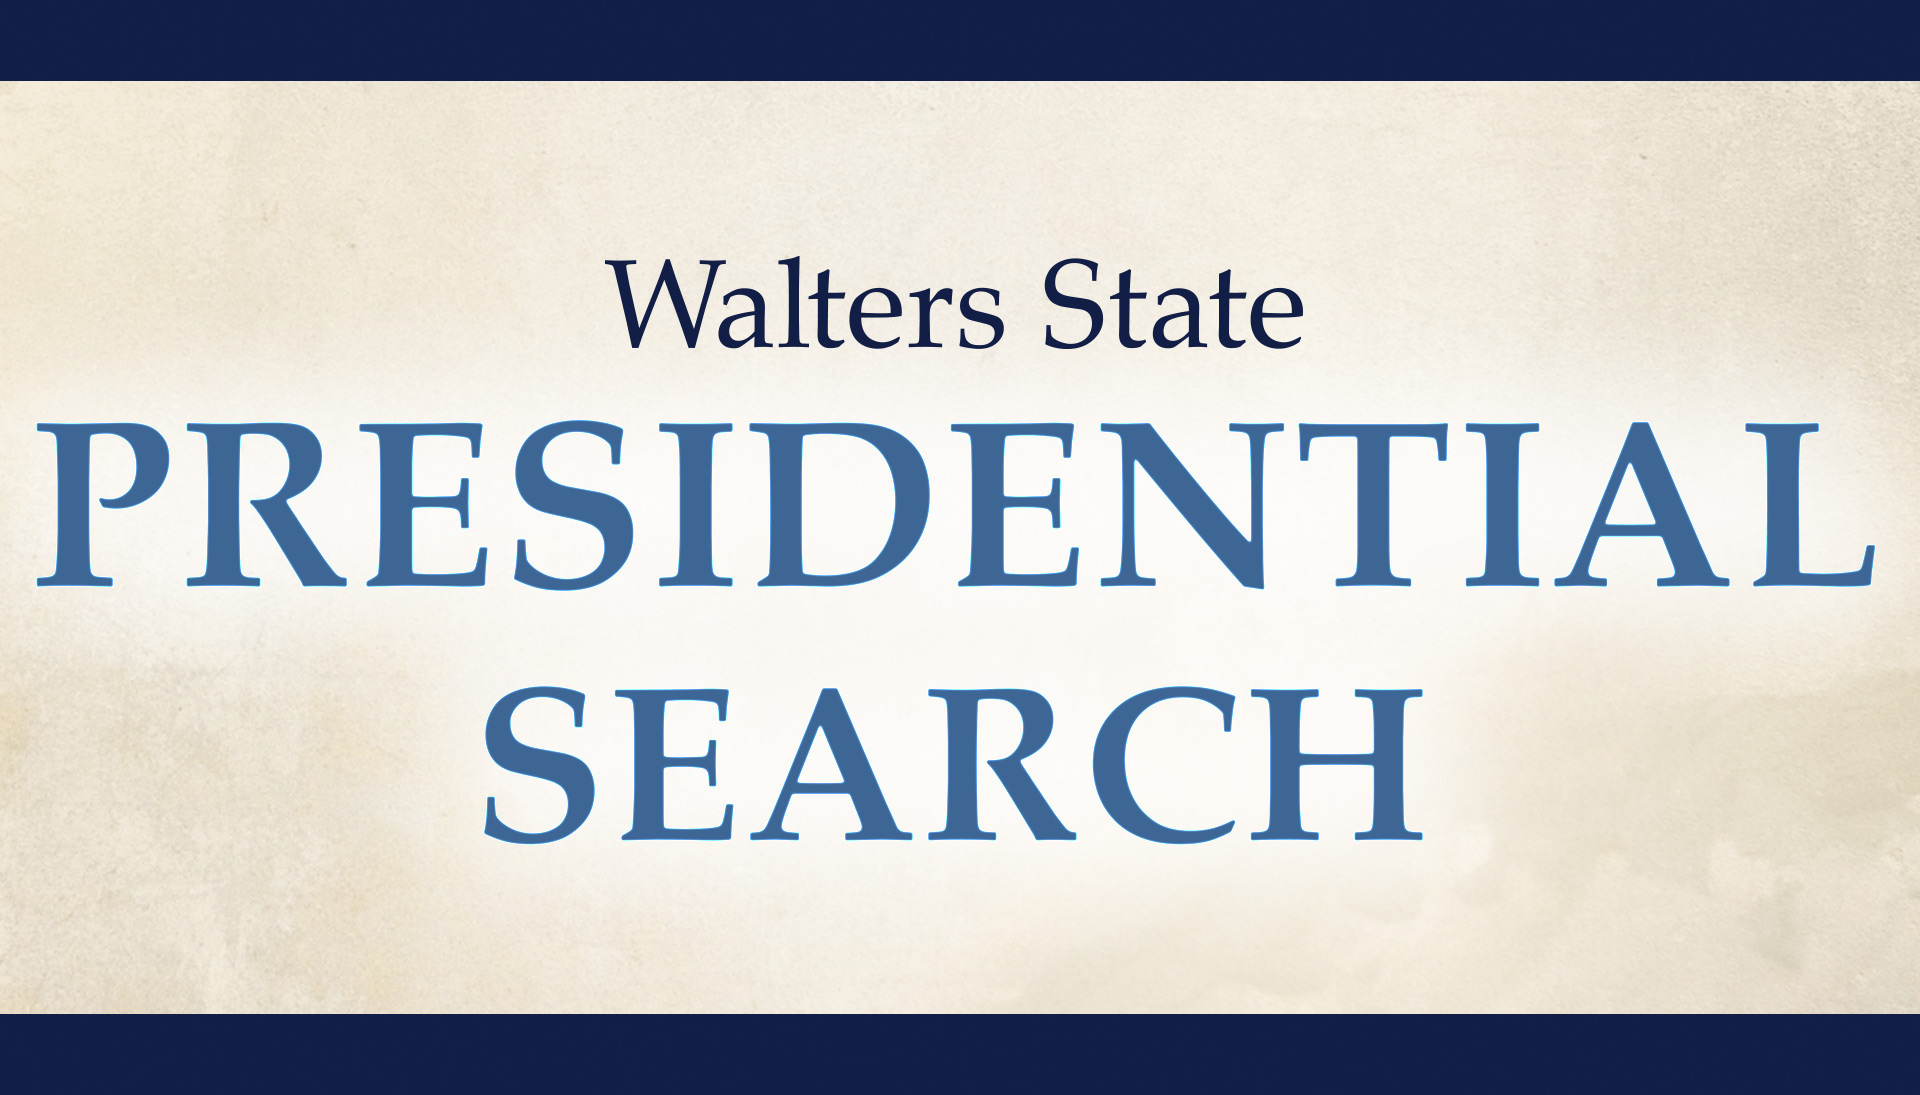 Walters State Presidential Search